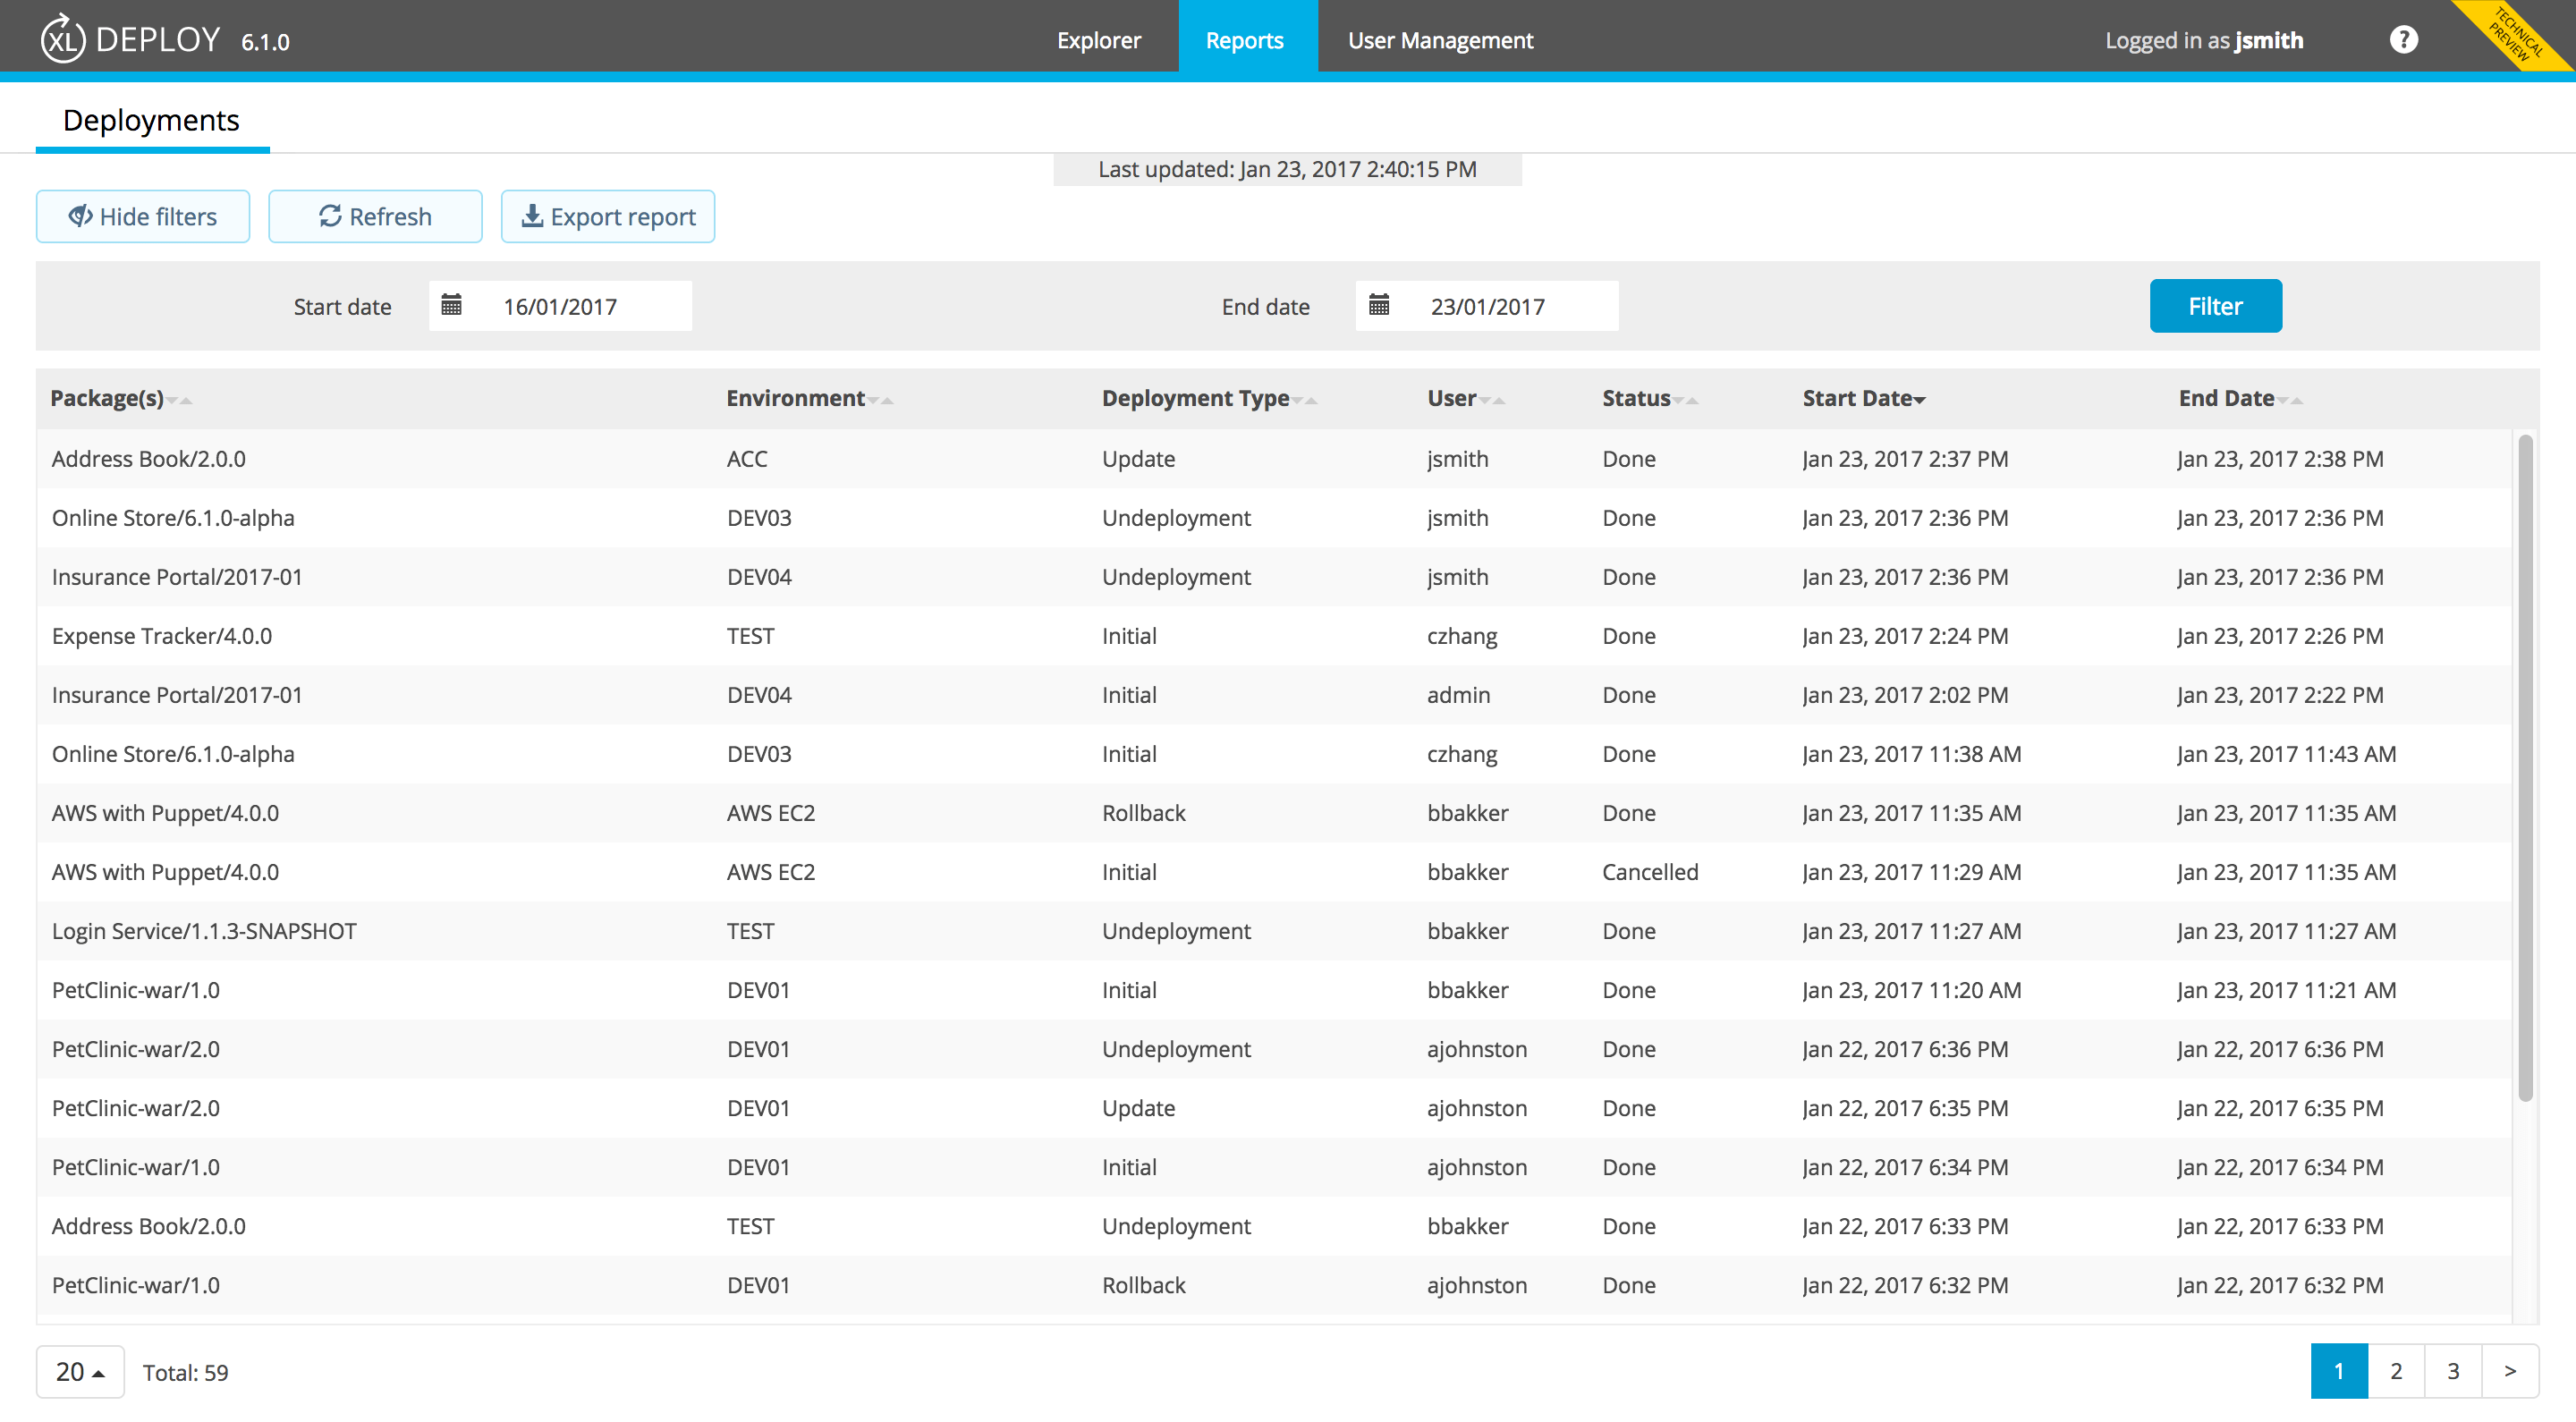 A deployment report in the XL Deploy new HTML5 UI.